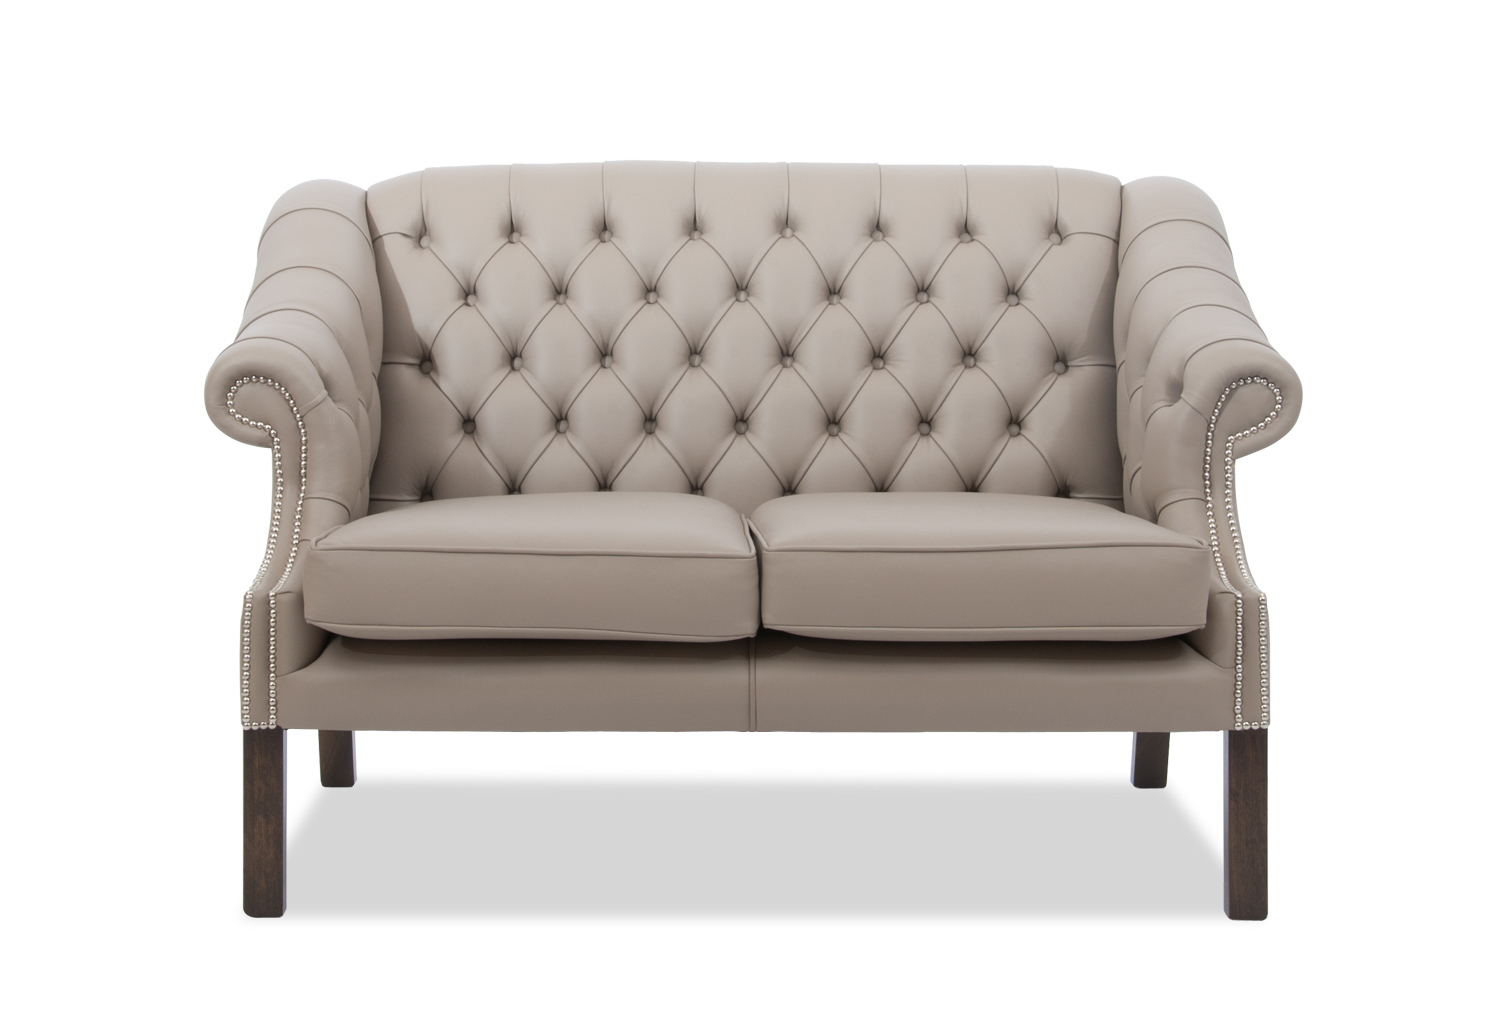 Chesterfield Sessel Stoffbezug Chesterfield Sofa Stoff Kaufen Sofa Ideas